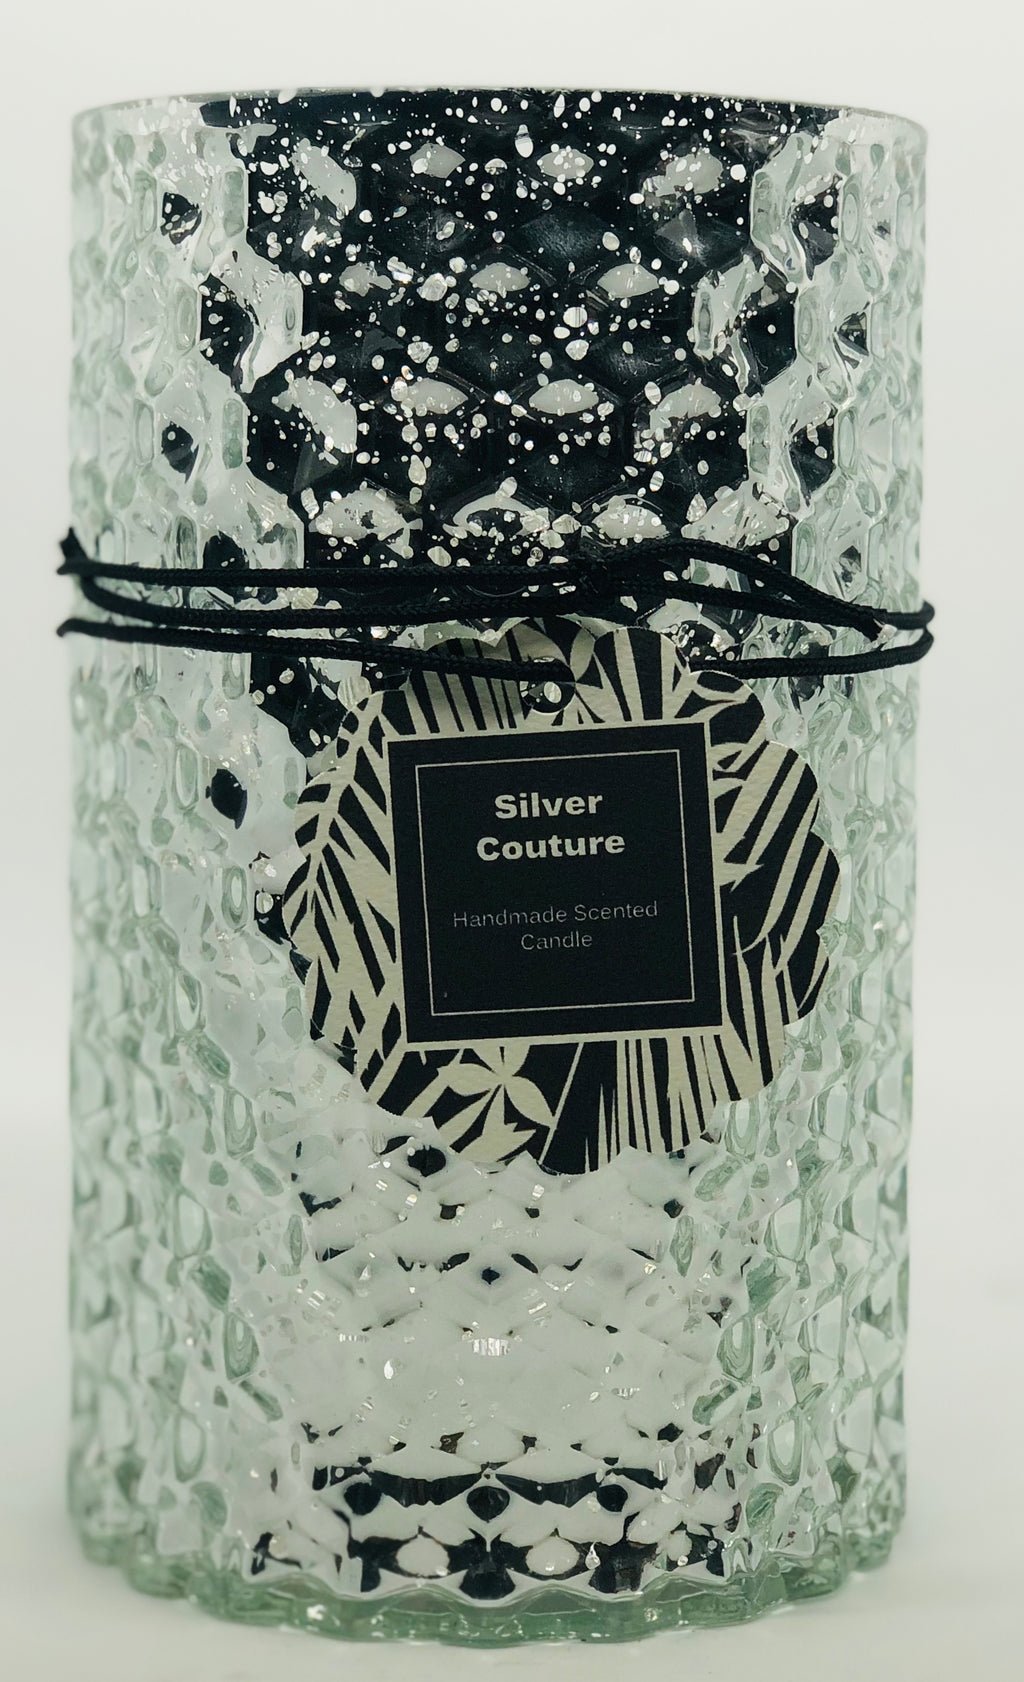 Silver Couture Luxury Handmade Candle